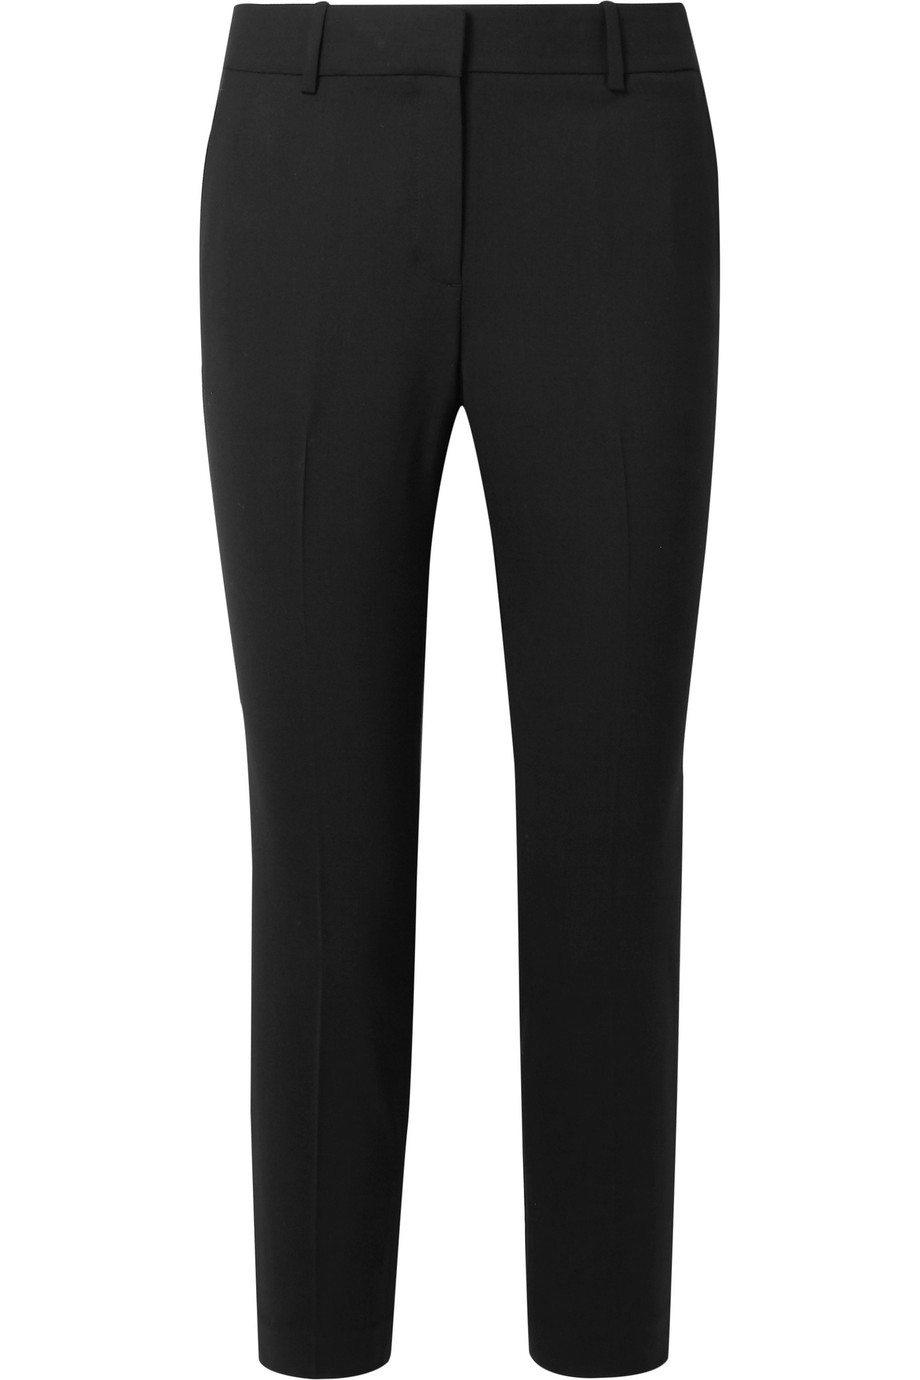 Theory black pants